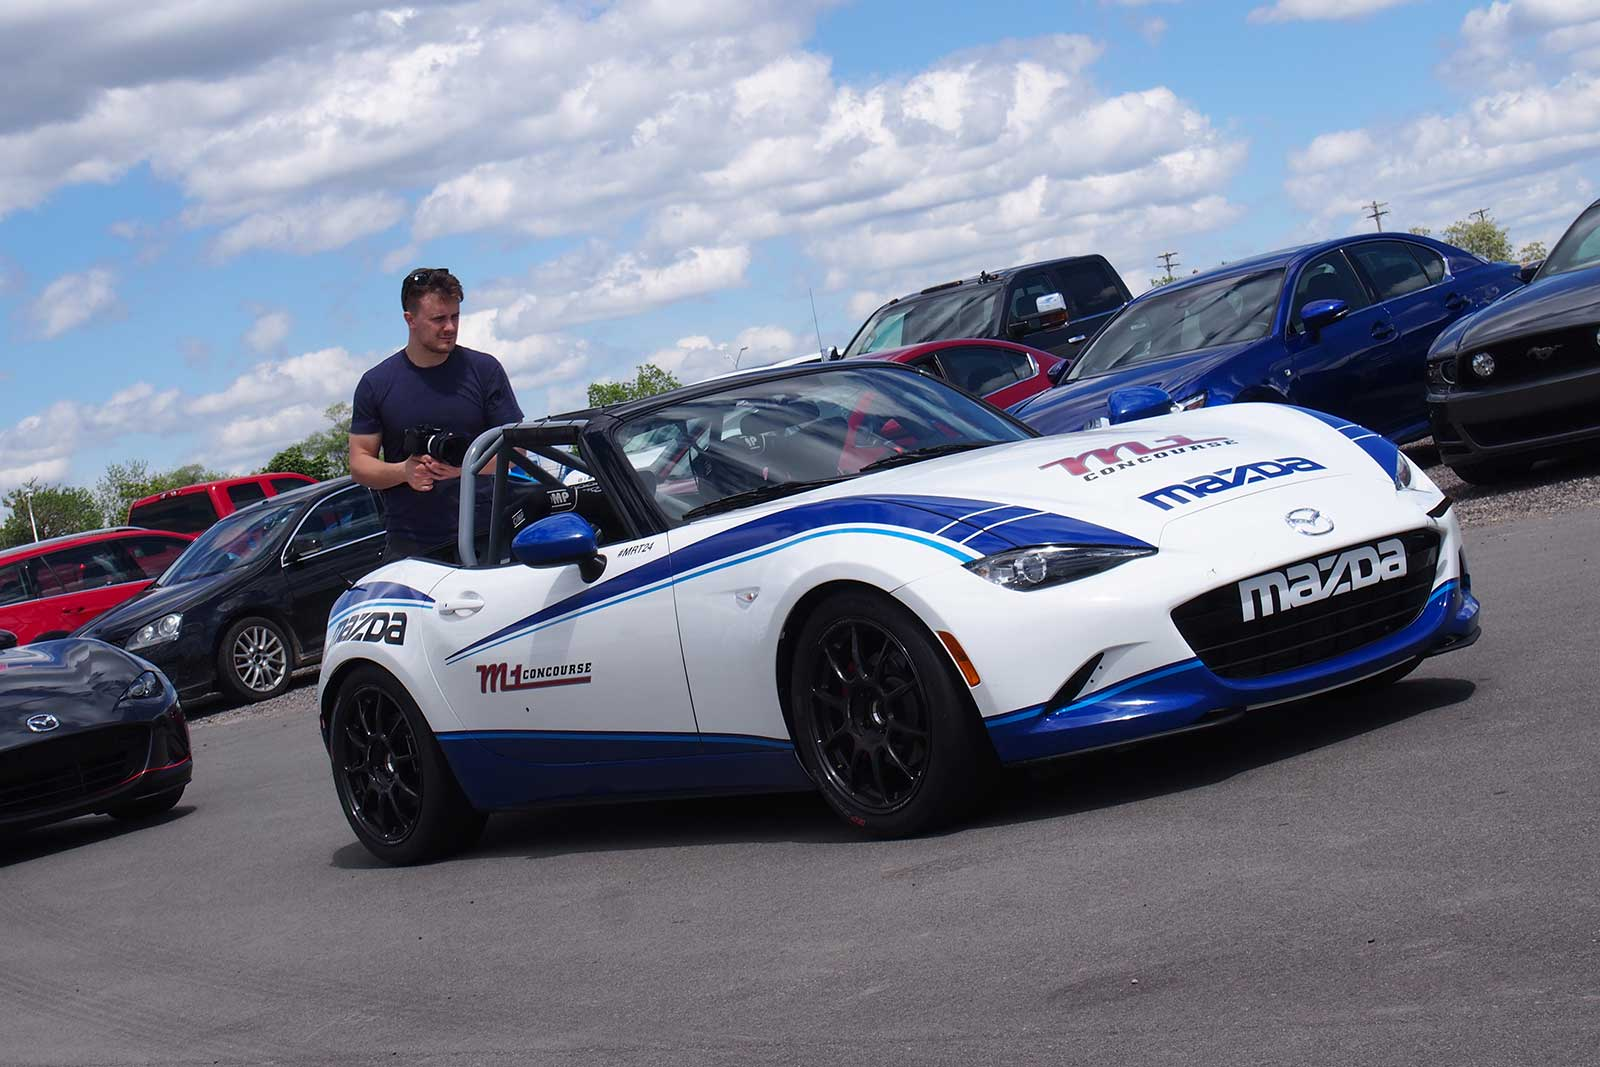 Mazda Mx 5 Cup Car Front 02